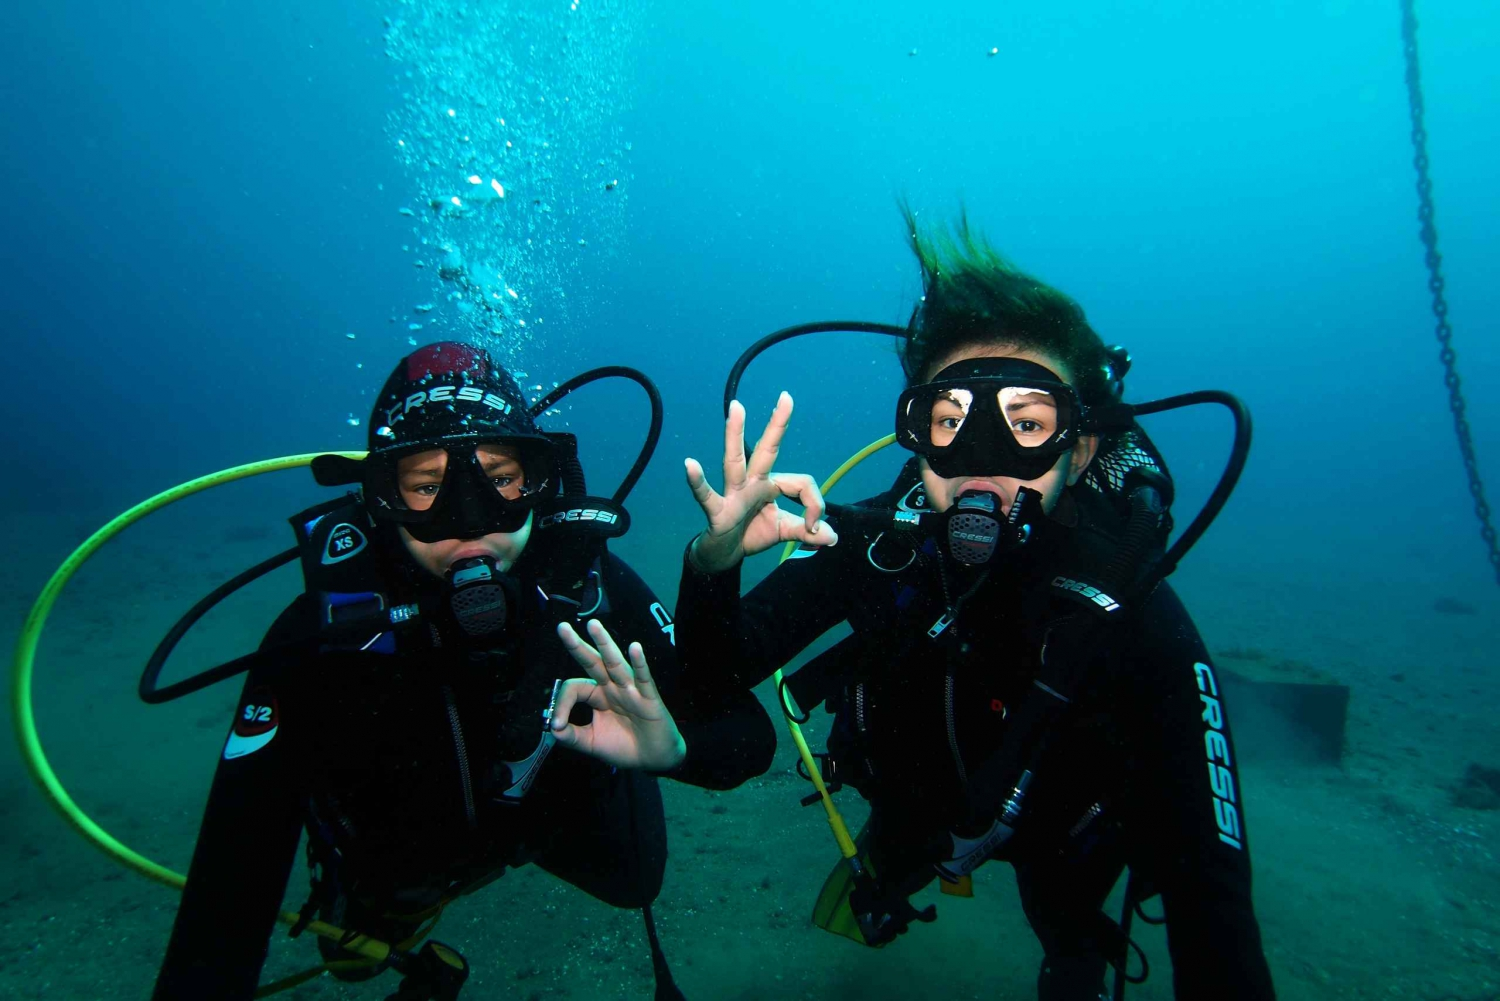 Discover Scuba Diving with Free Photos